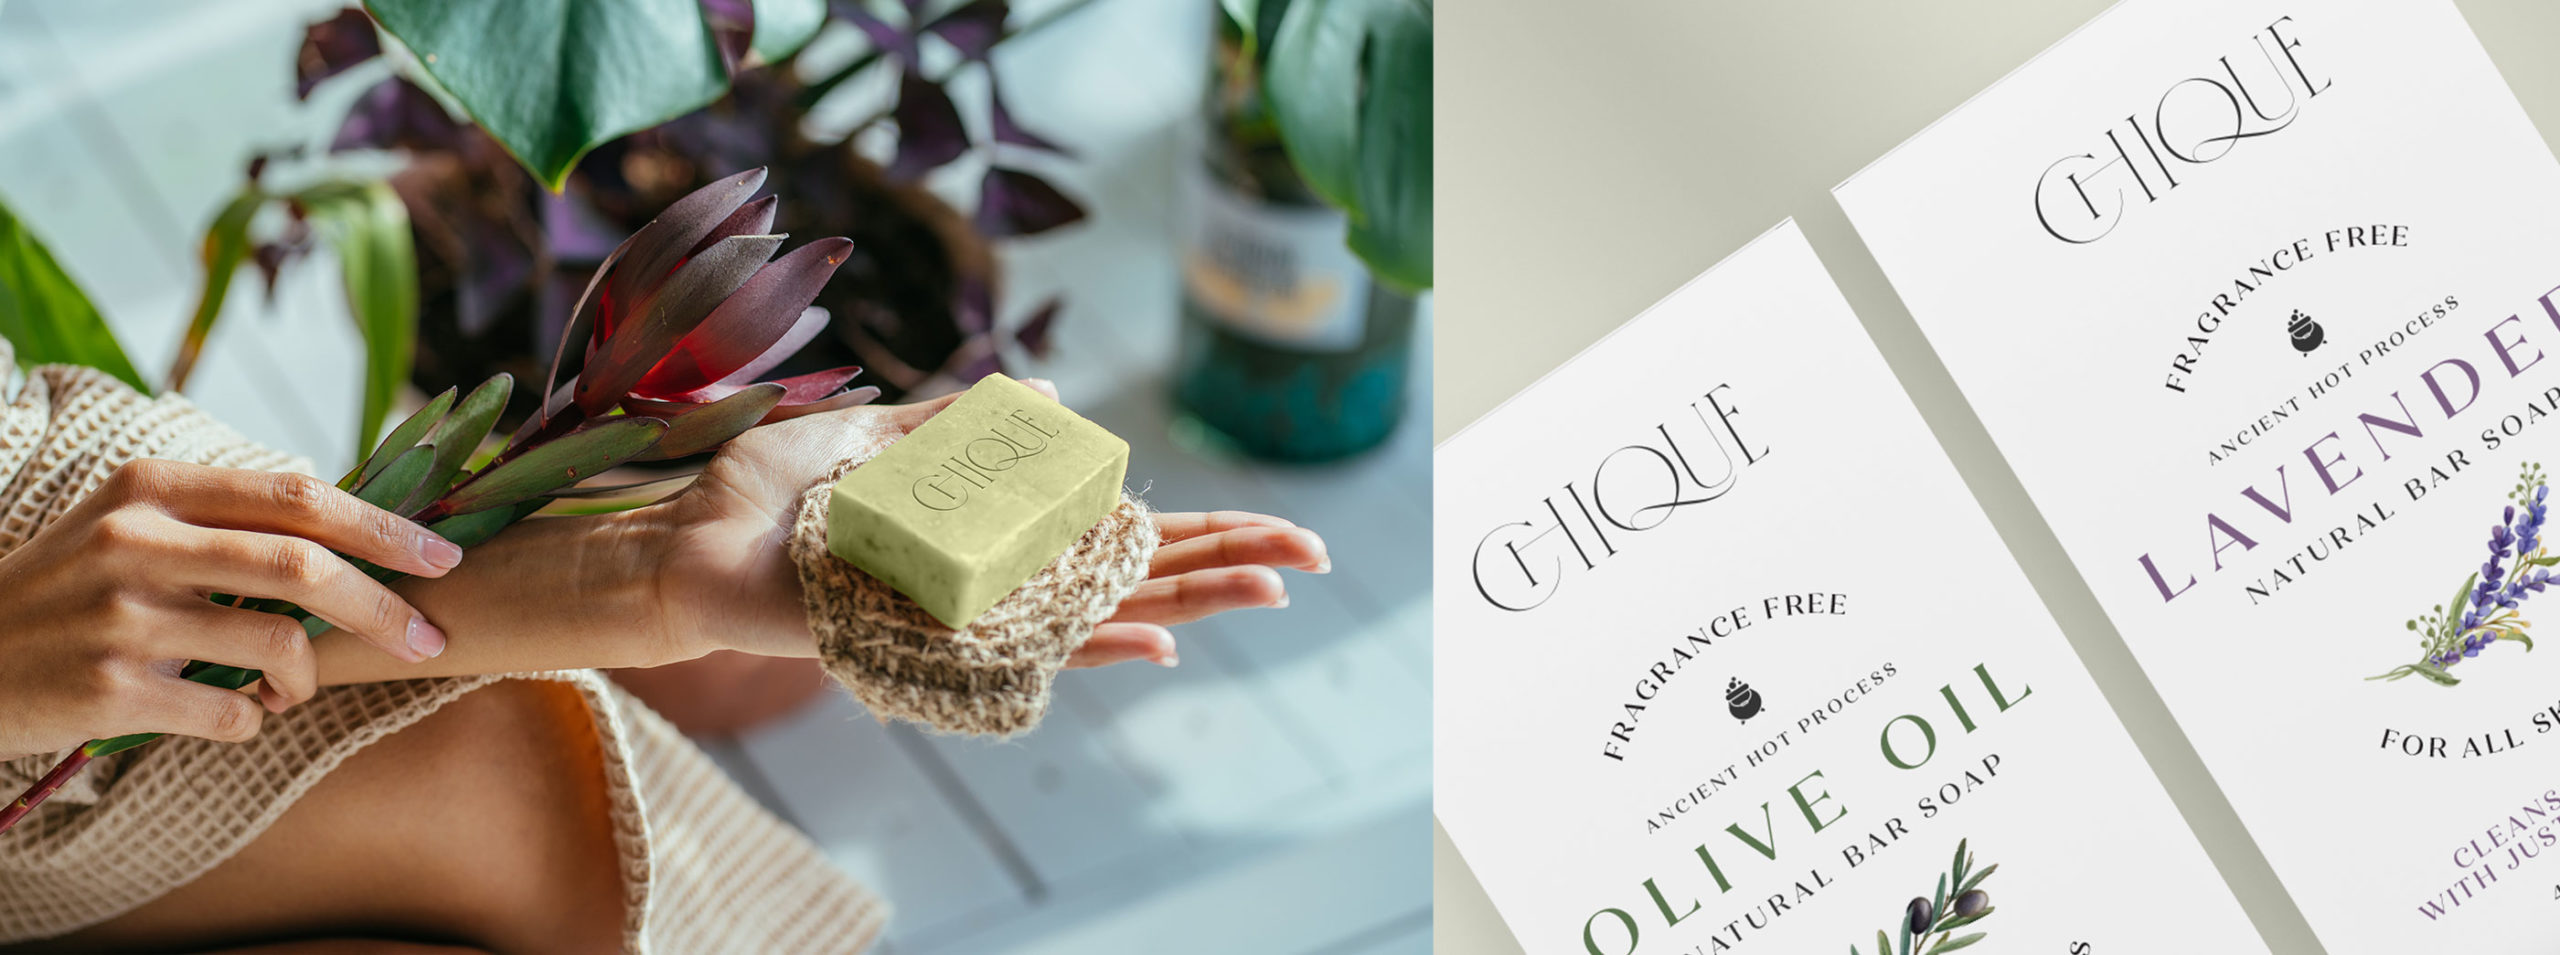 Chique bar soap – product and packaging - BONB Creative & Design